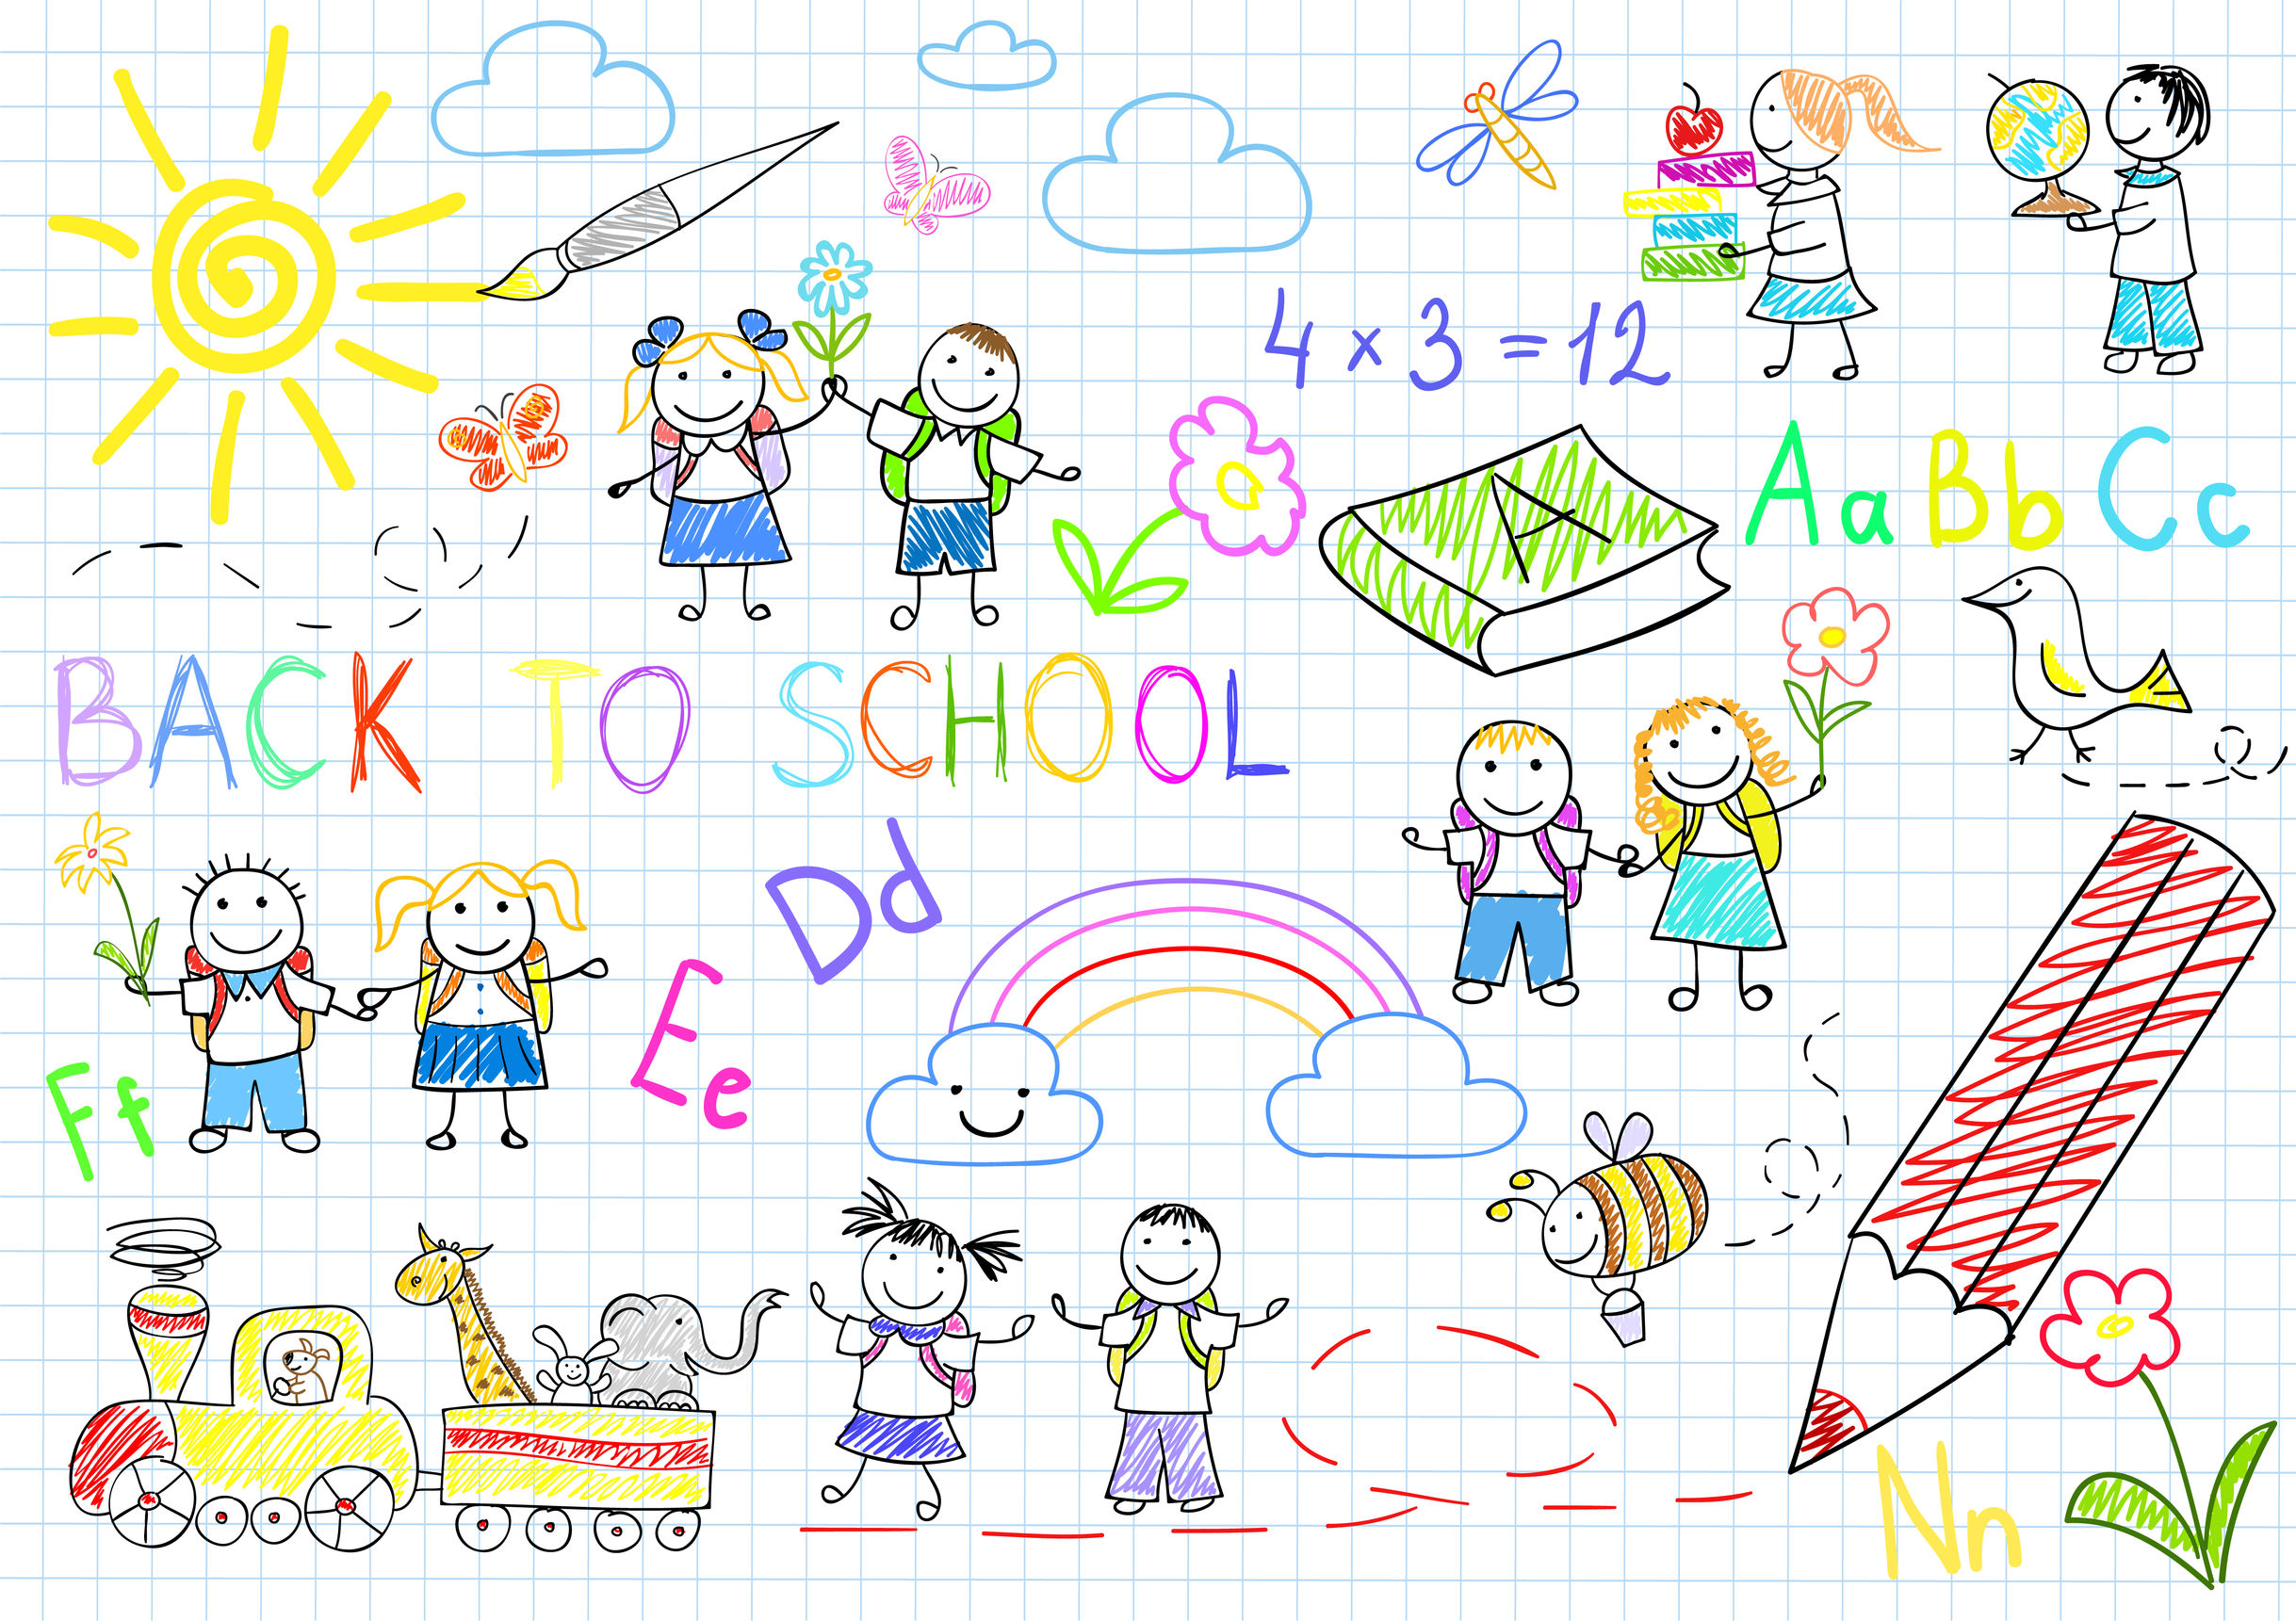 30466477 - back to school. sketches with happy pupils. sketch on notebook page